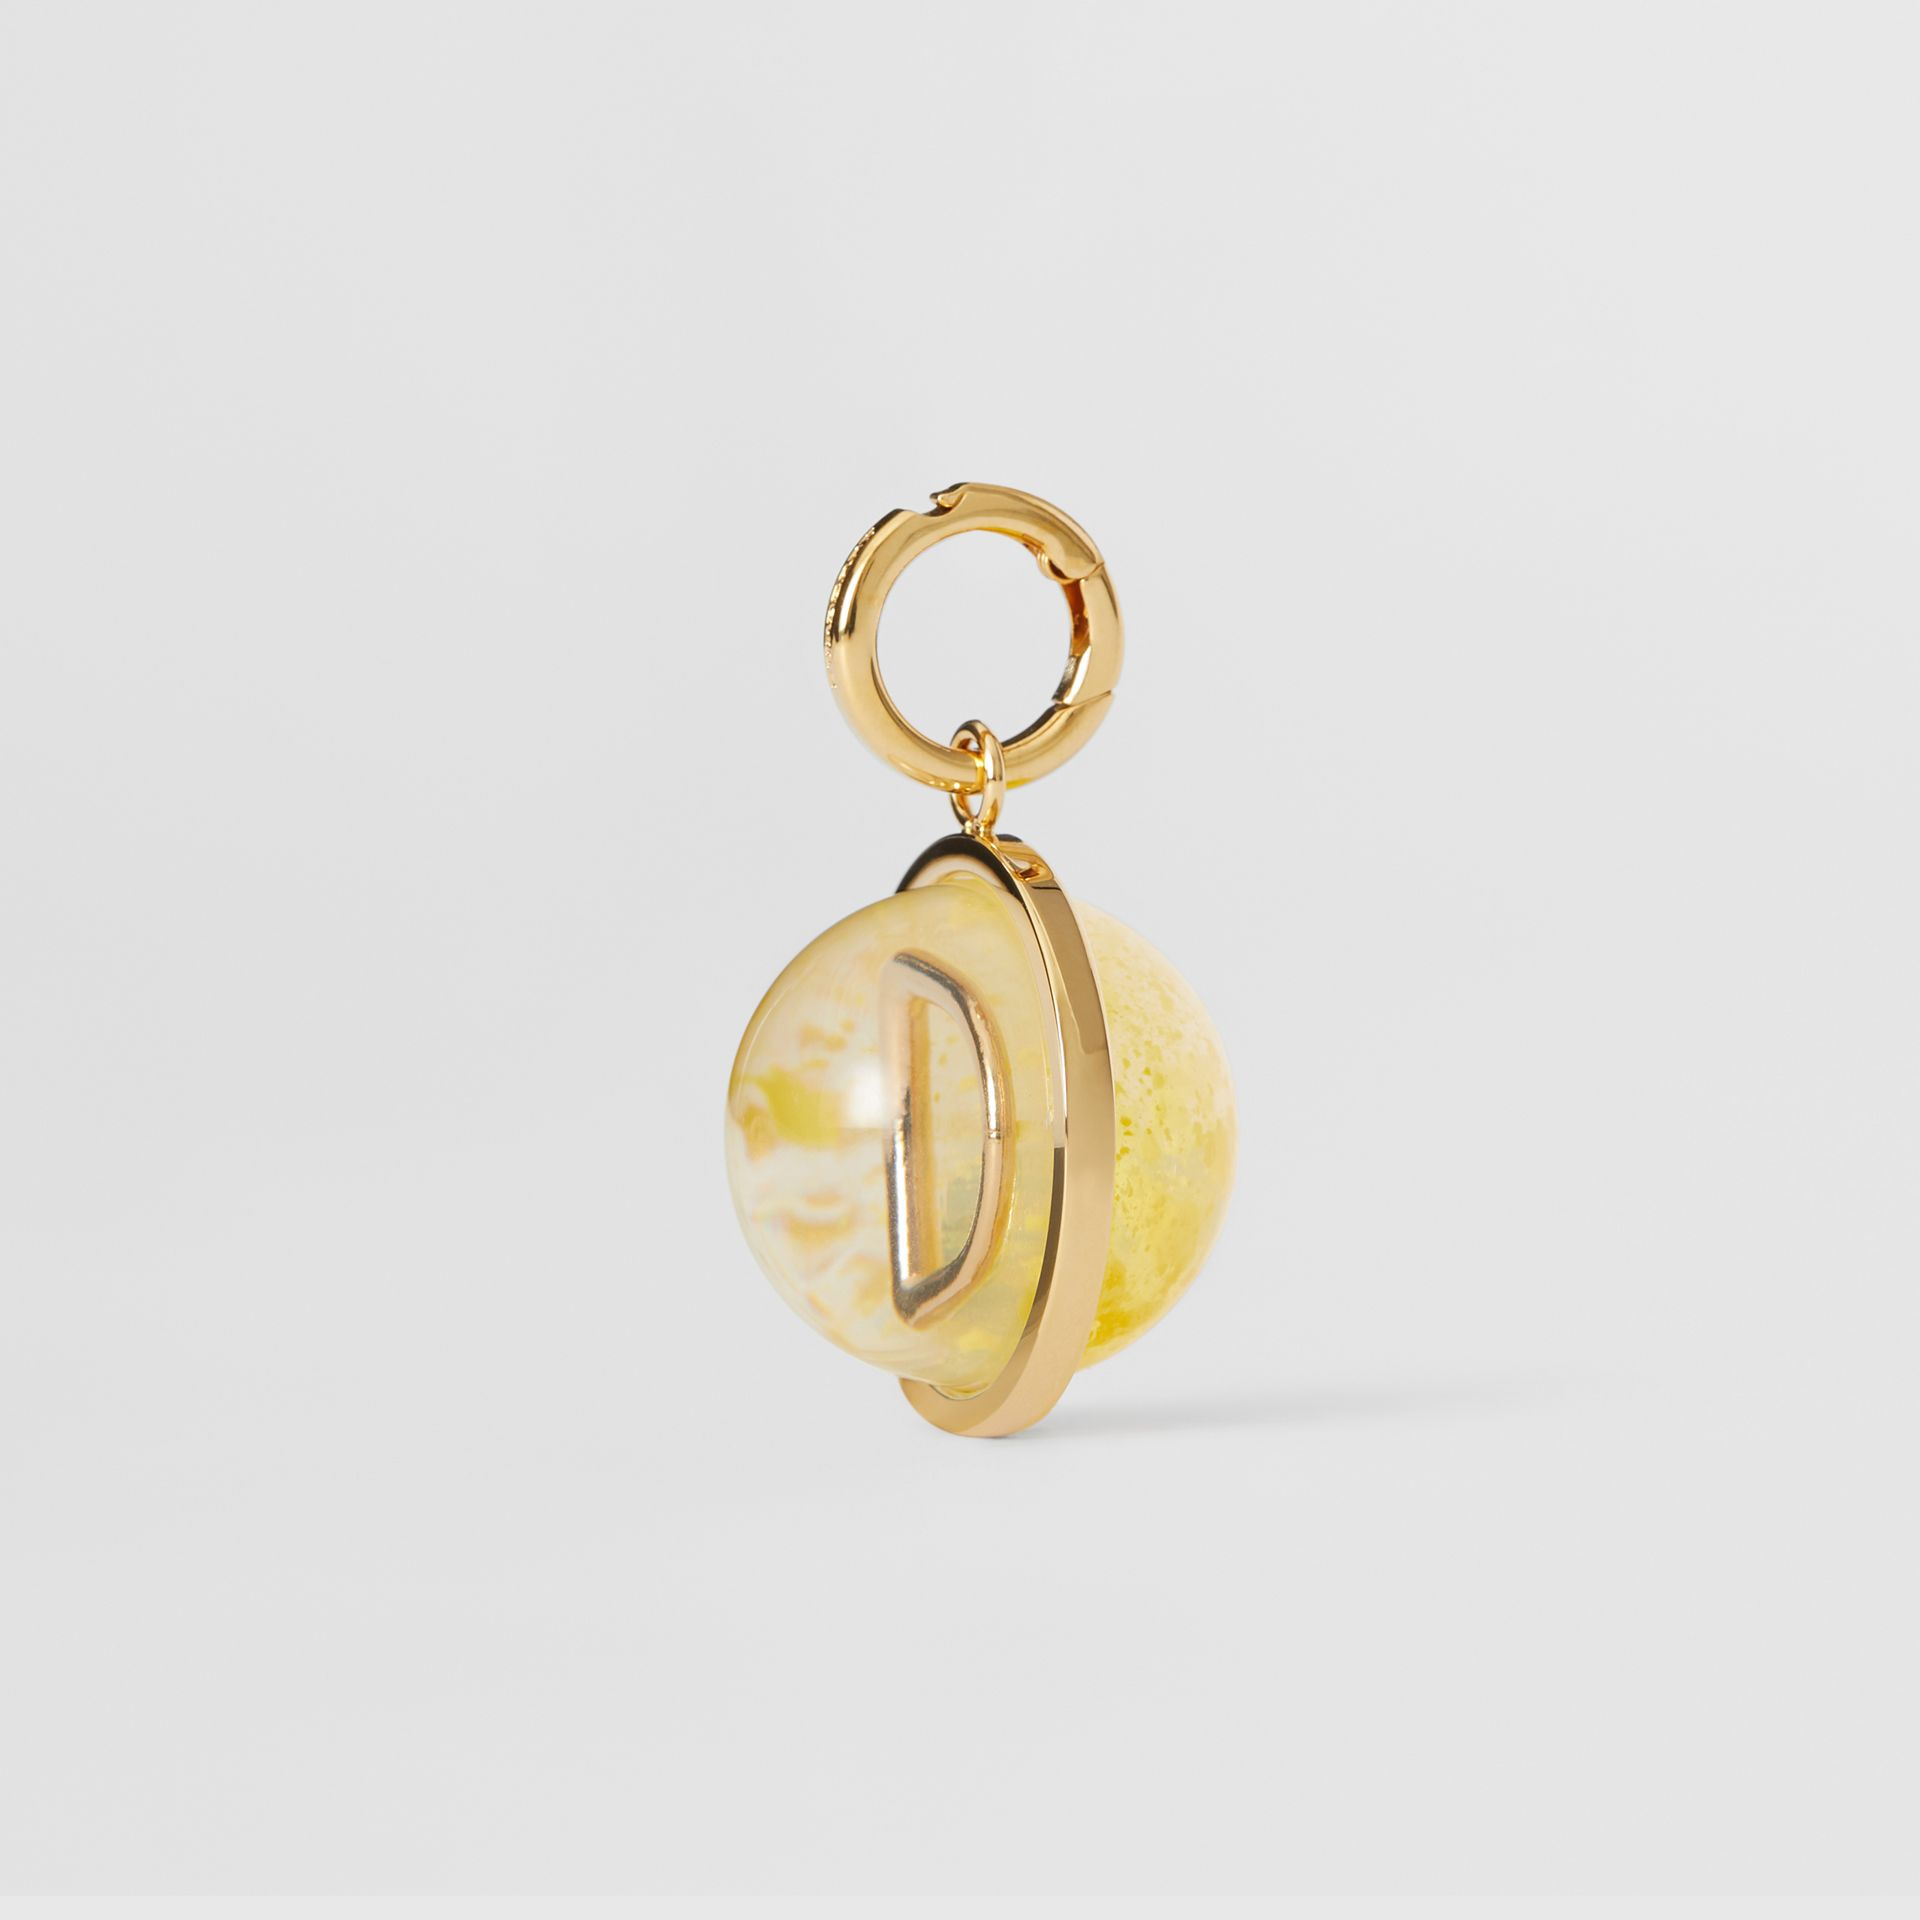 Marbled Resin 'D' Alphabet Charm in Gold/mimosa - Women | Burberry - gallery image 5